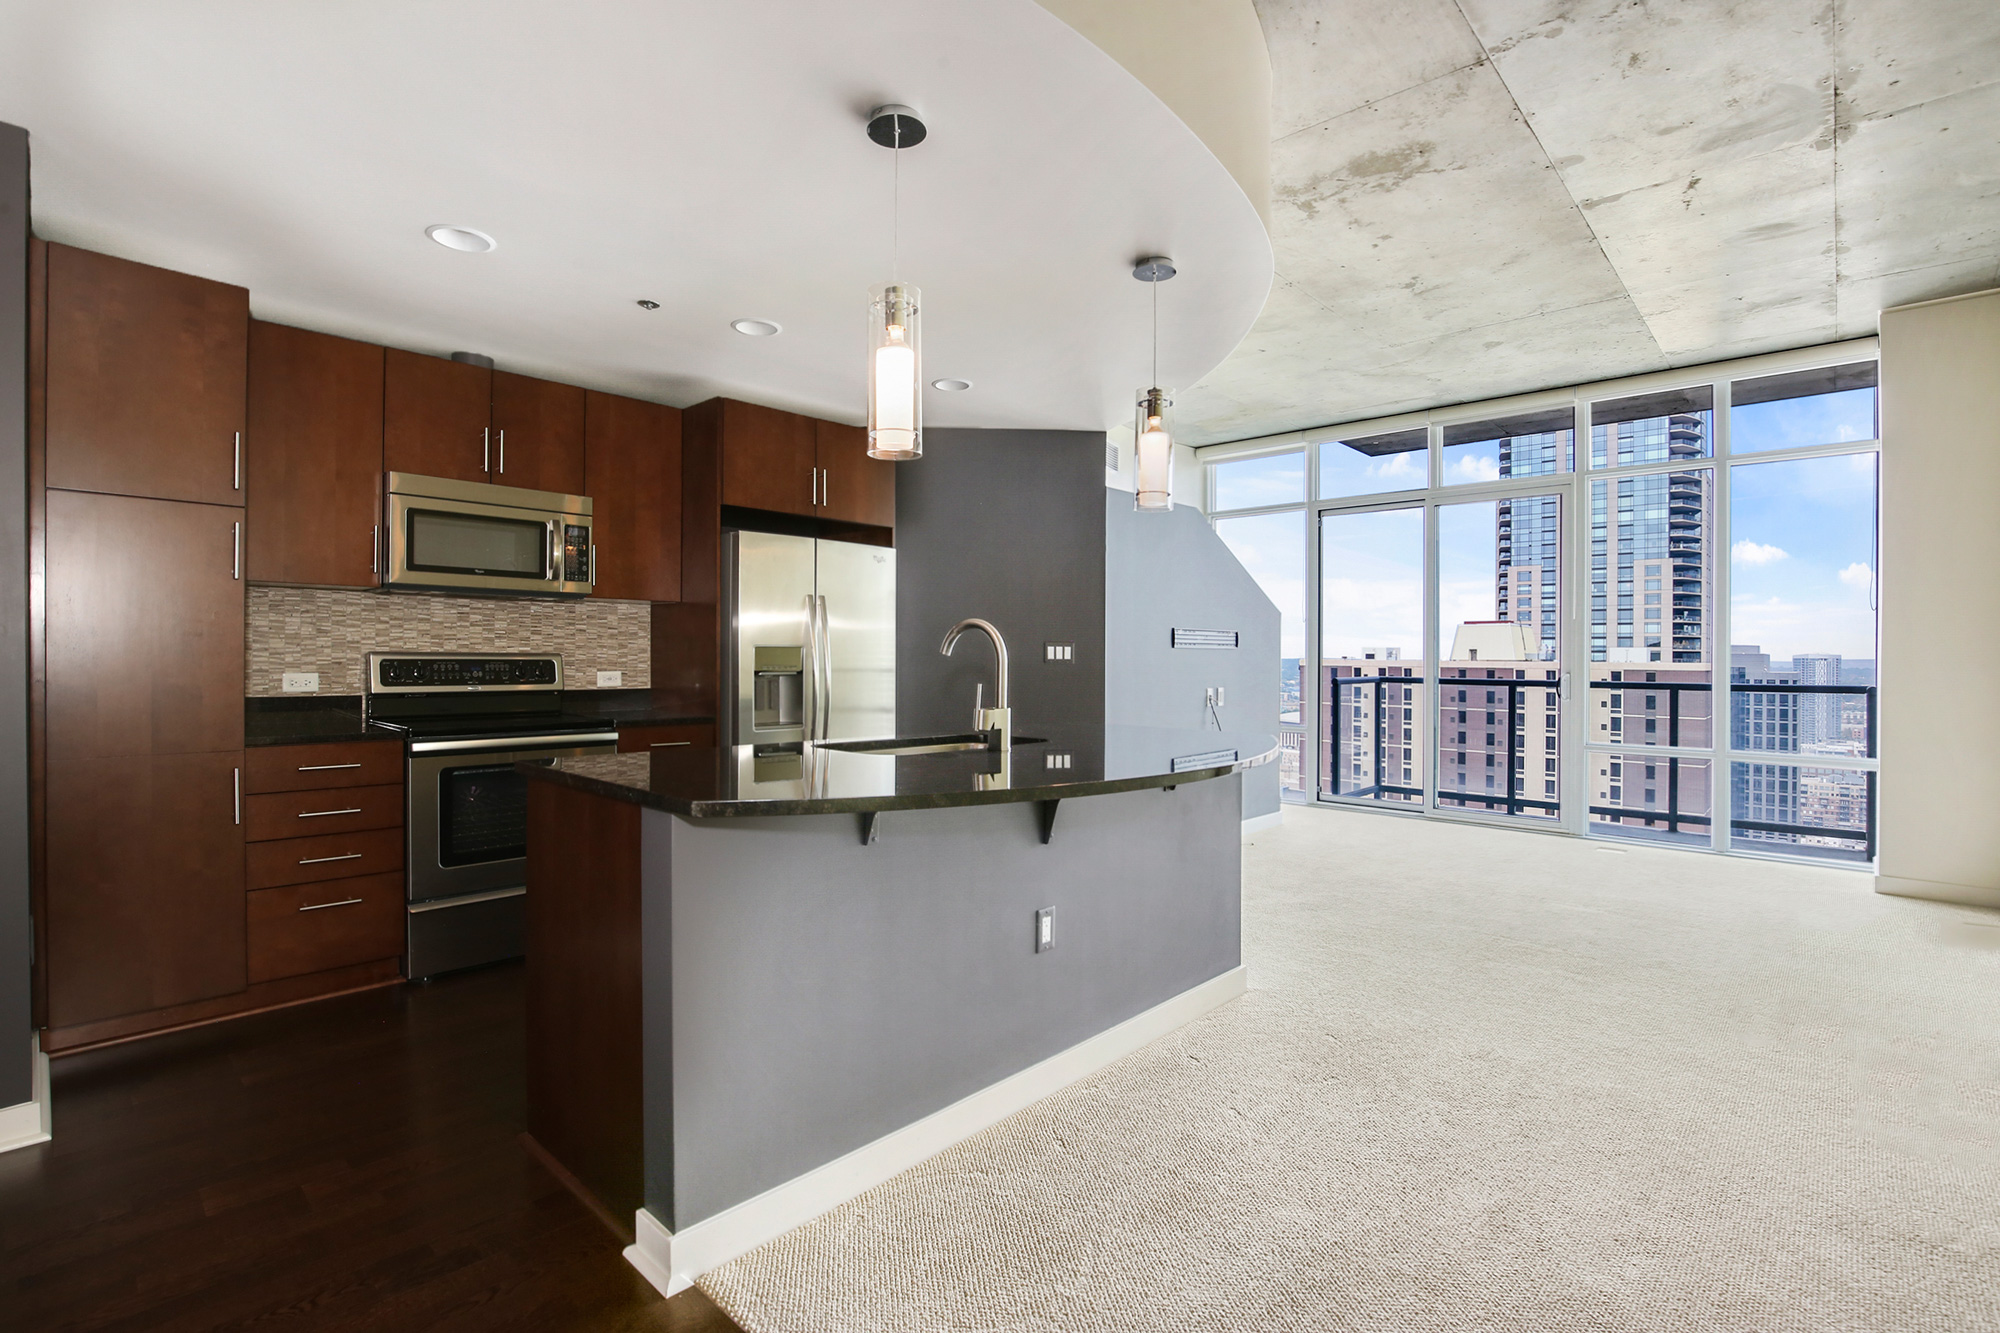 Condo for rent downtown Denver at Spire